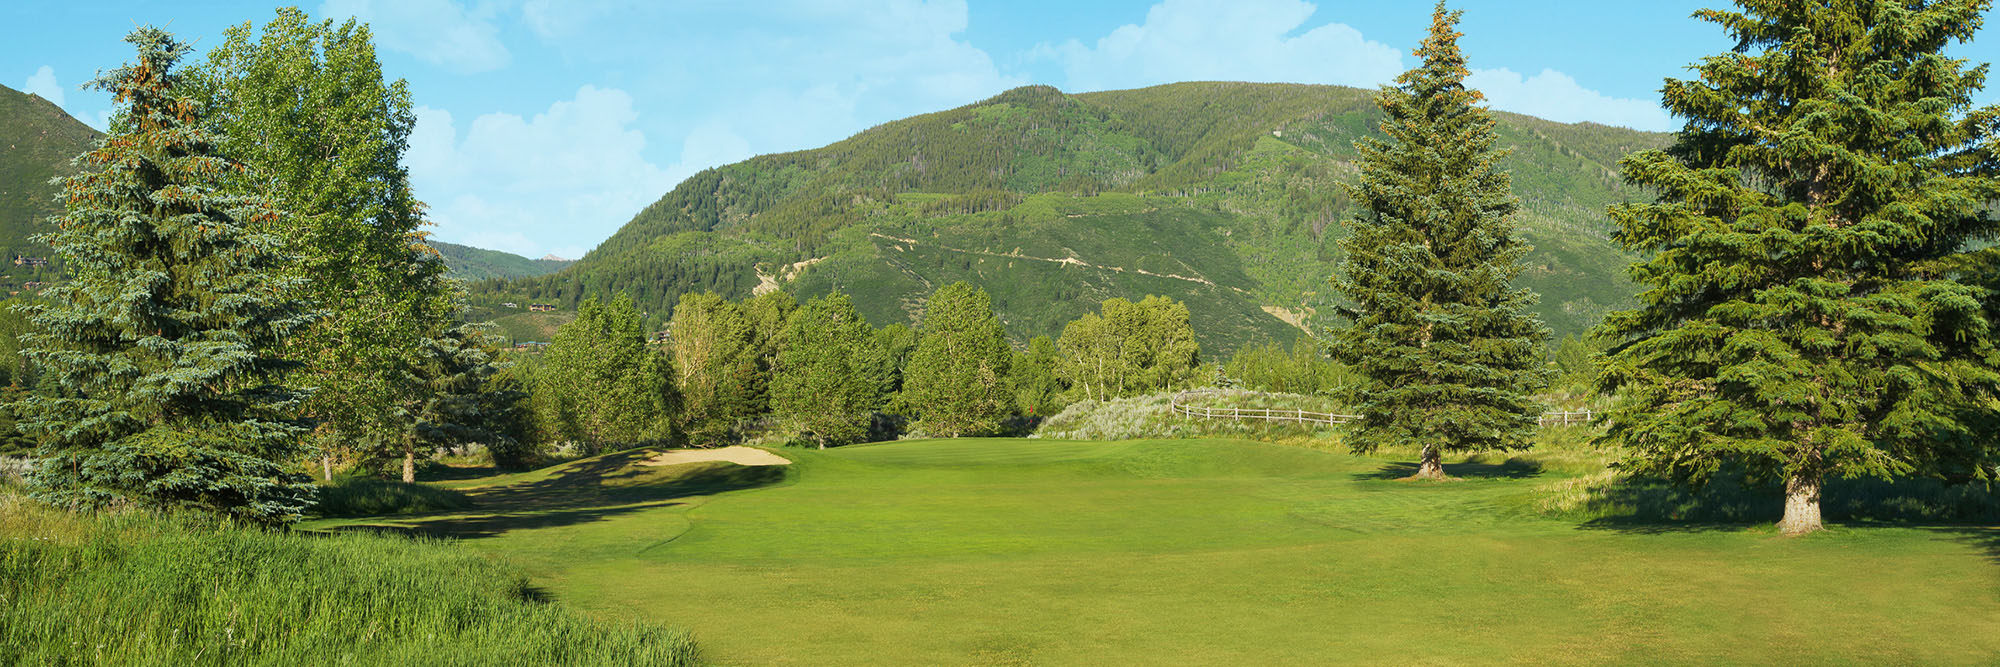 Golf Course Image - Aspen Golf Course No. 8